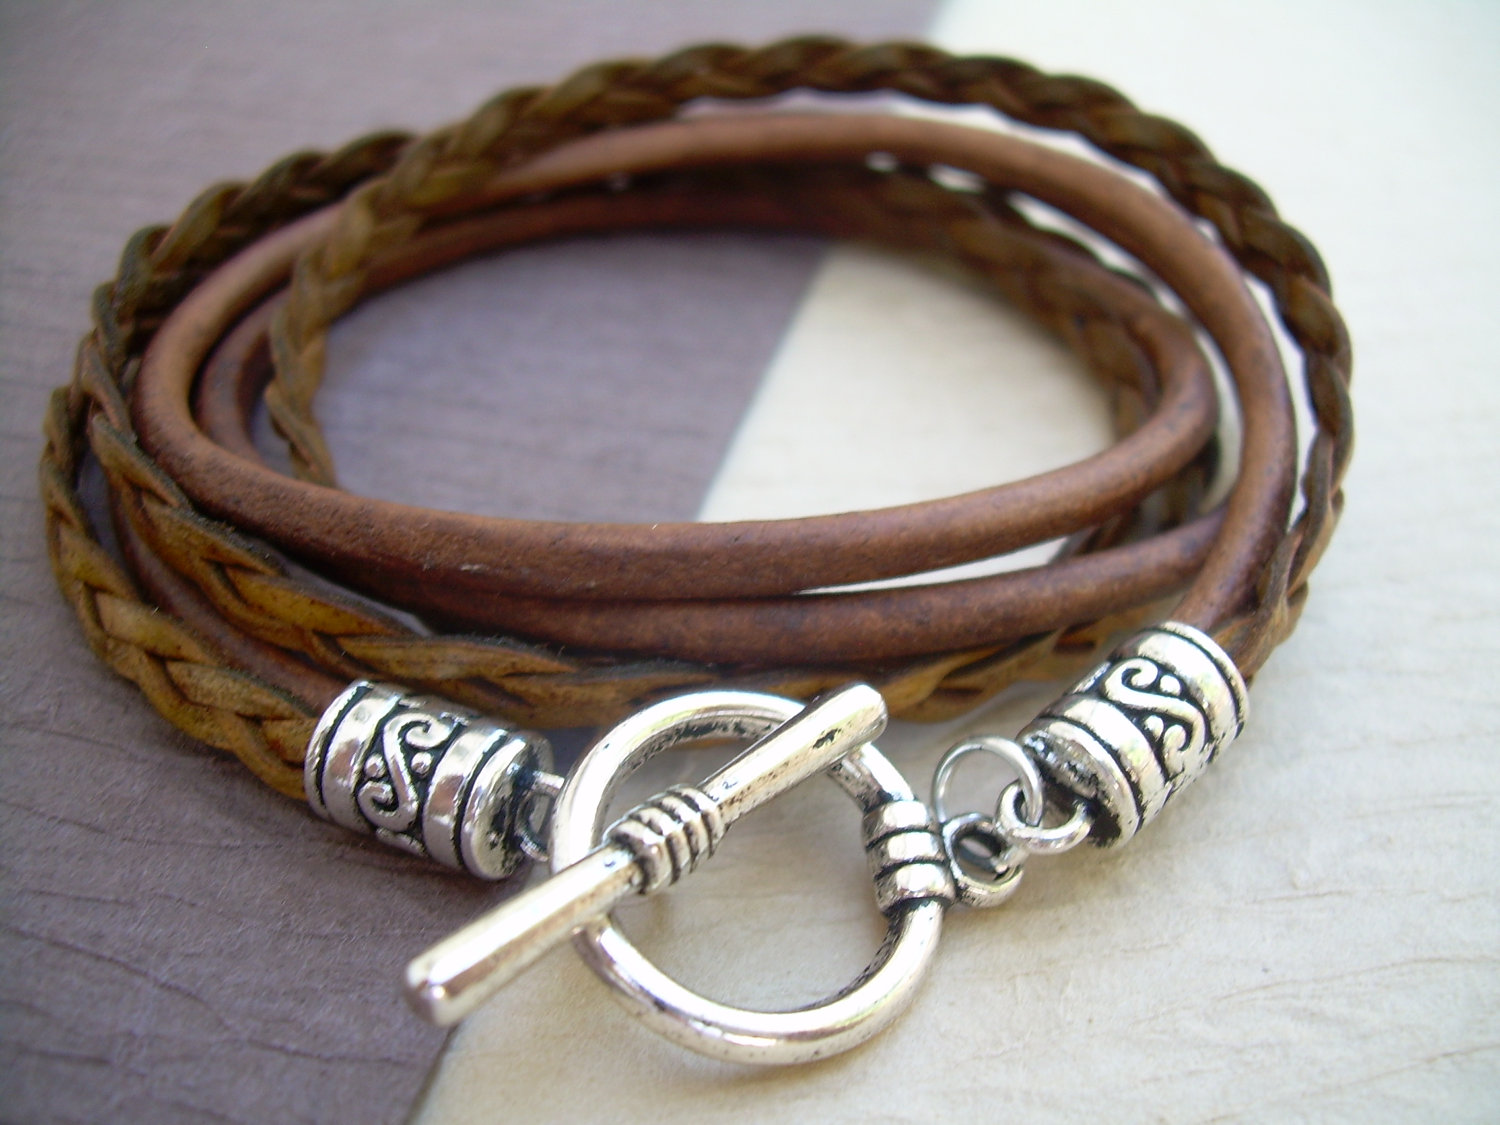 Mens Womens Uni Triple Wrap Leather Bracelet With Toggle Clasp Light Antique Brown